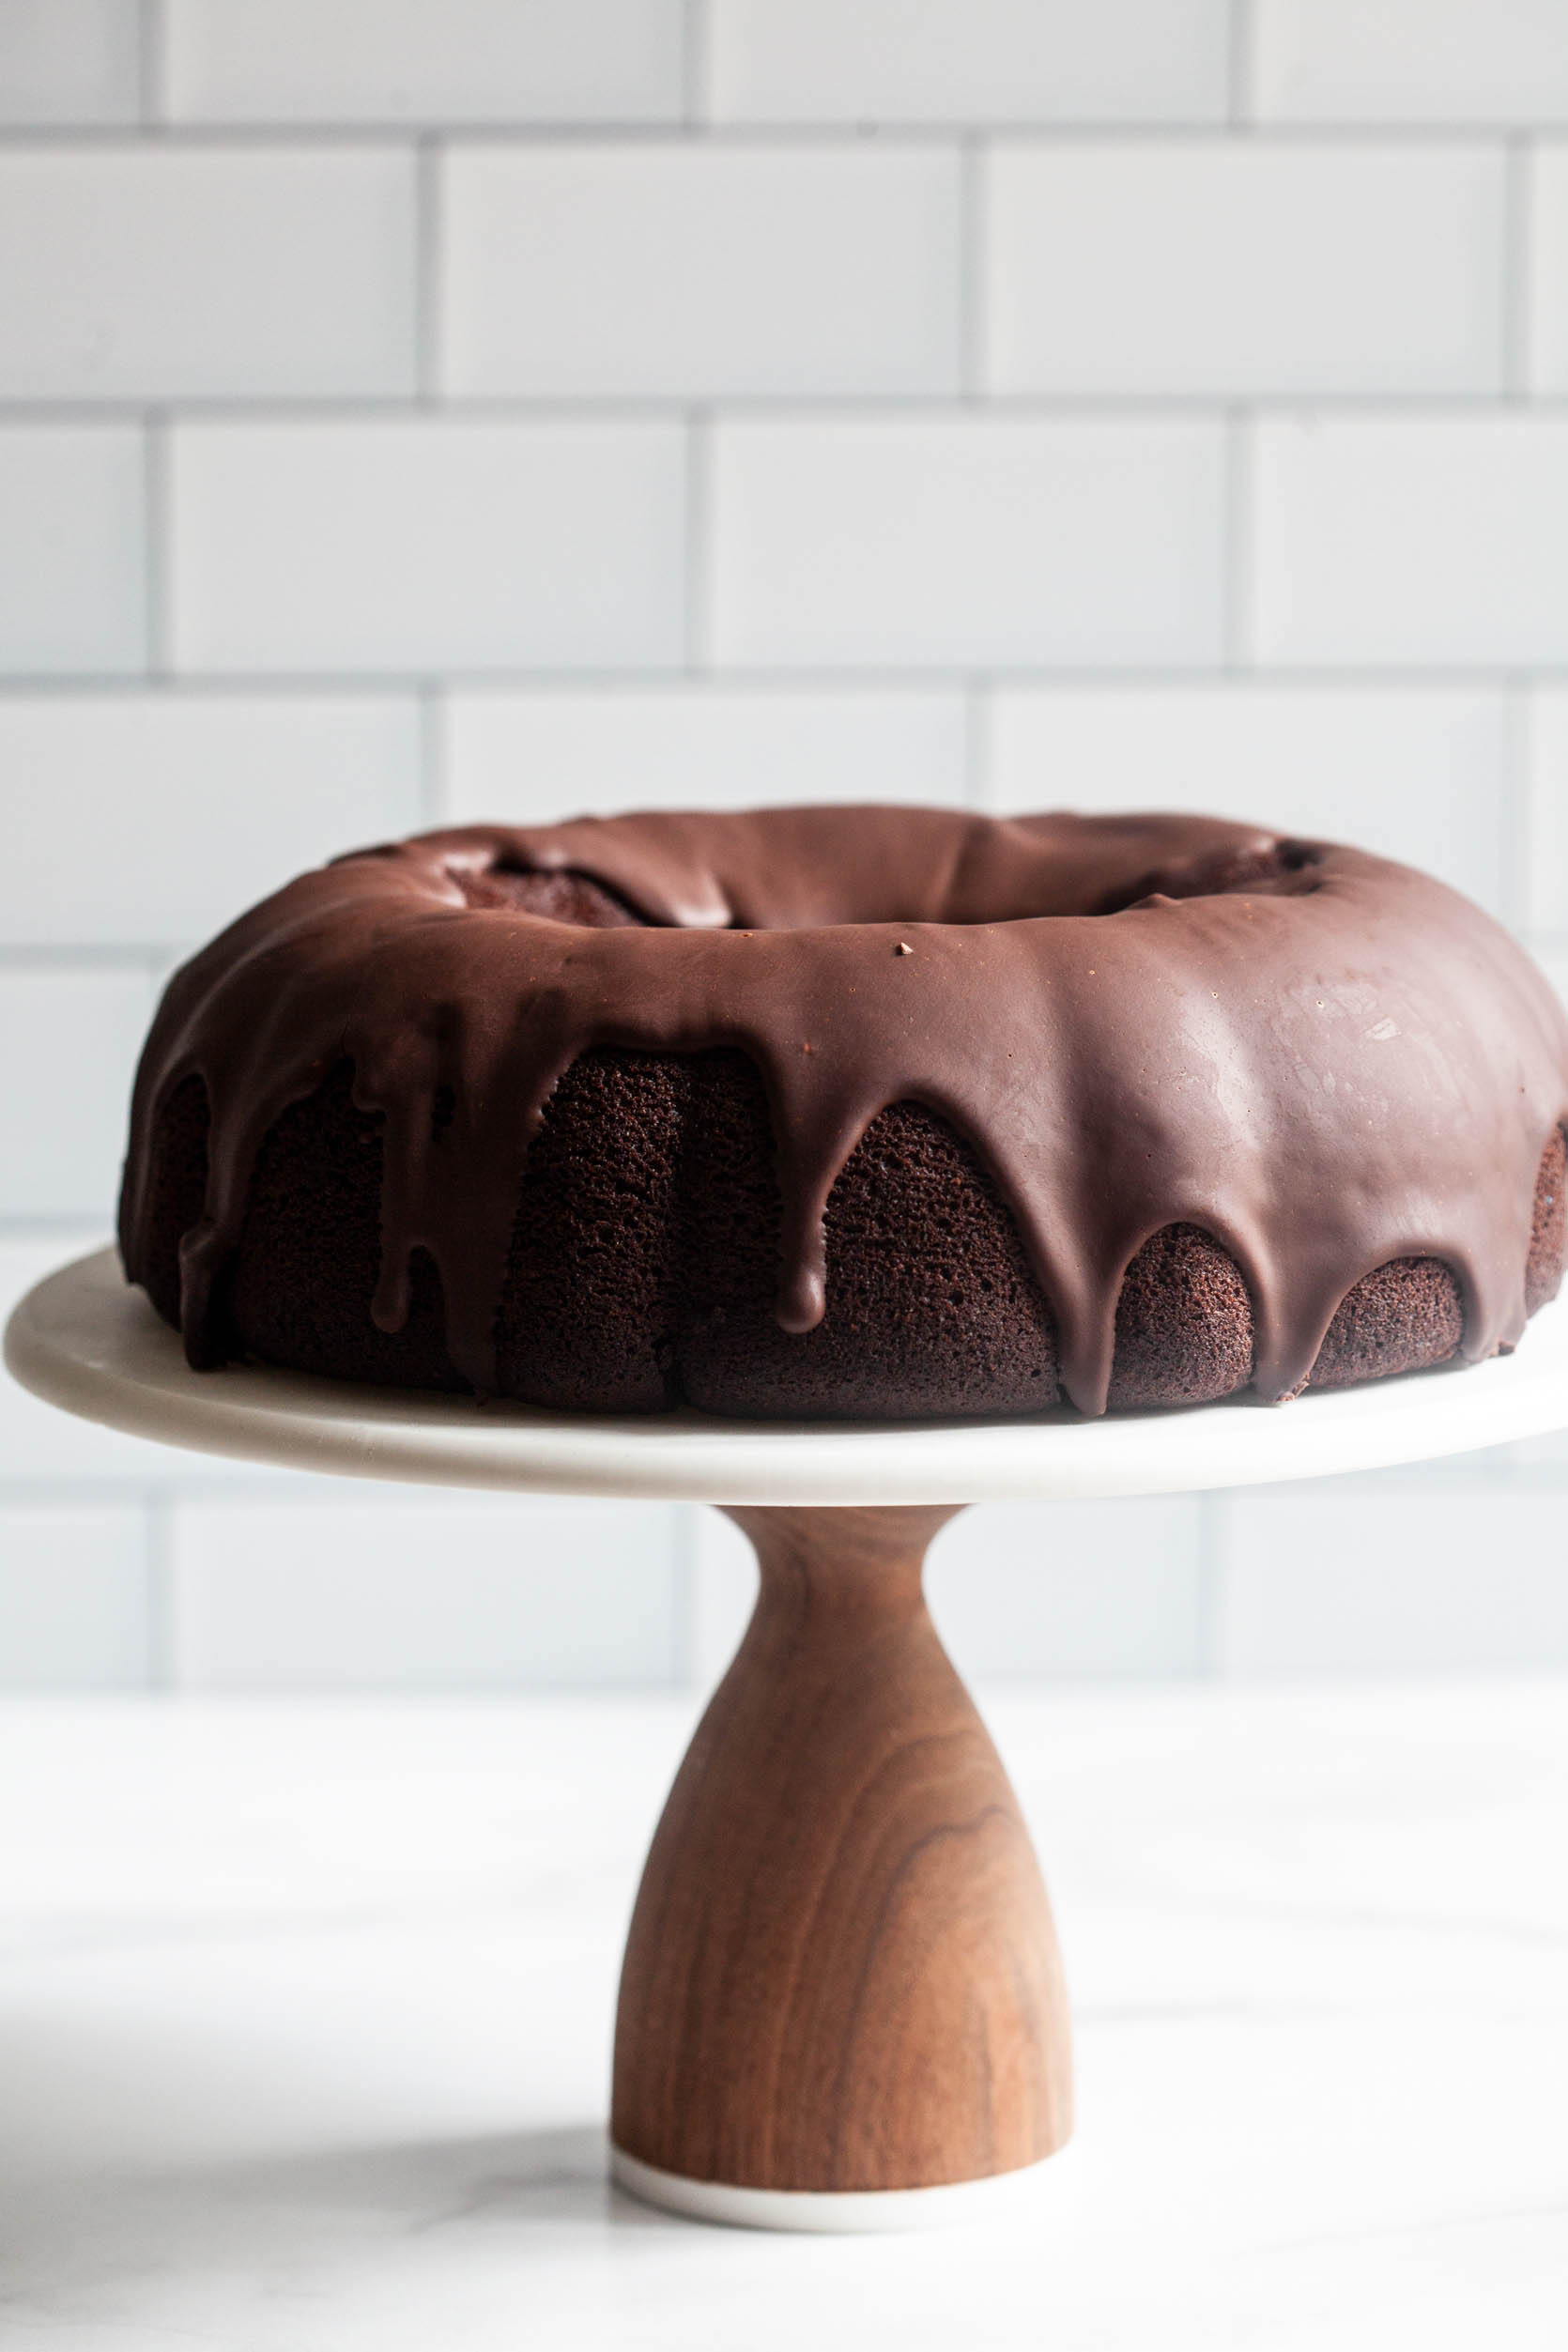 Vegan Chocolate Bundt Cake with Chocolate Ganache Glaze